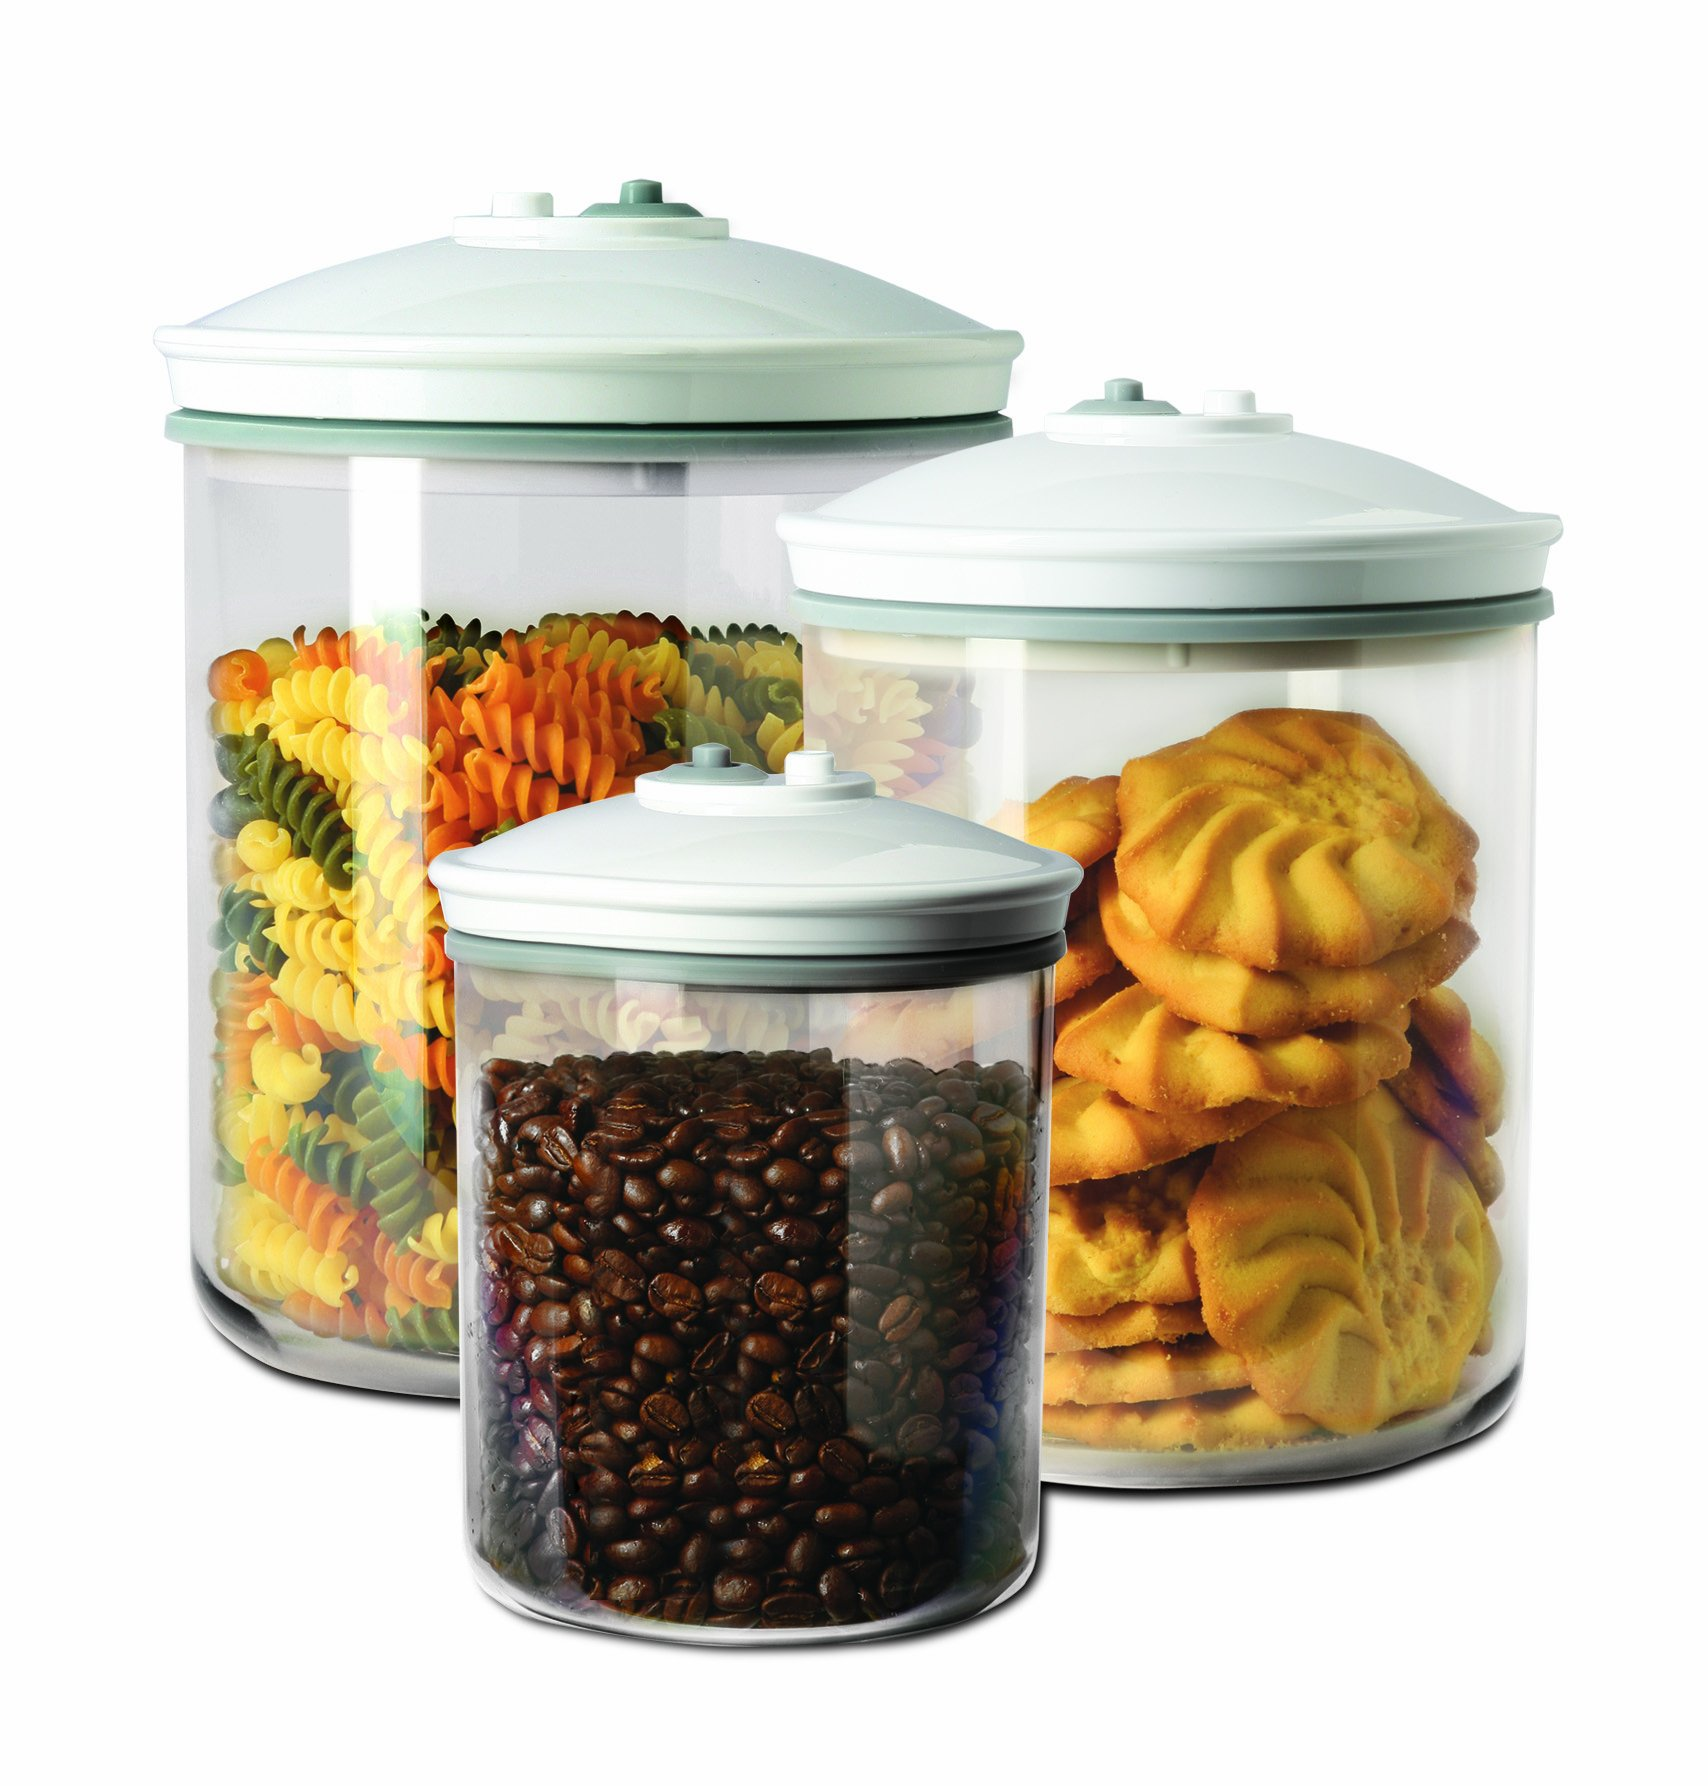 Food Saver FSC003-I 3 Piece Round Canister Set 0.7 L, 1.42 L and 2.37 L